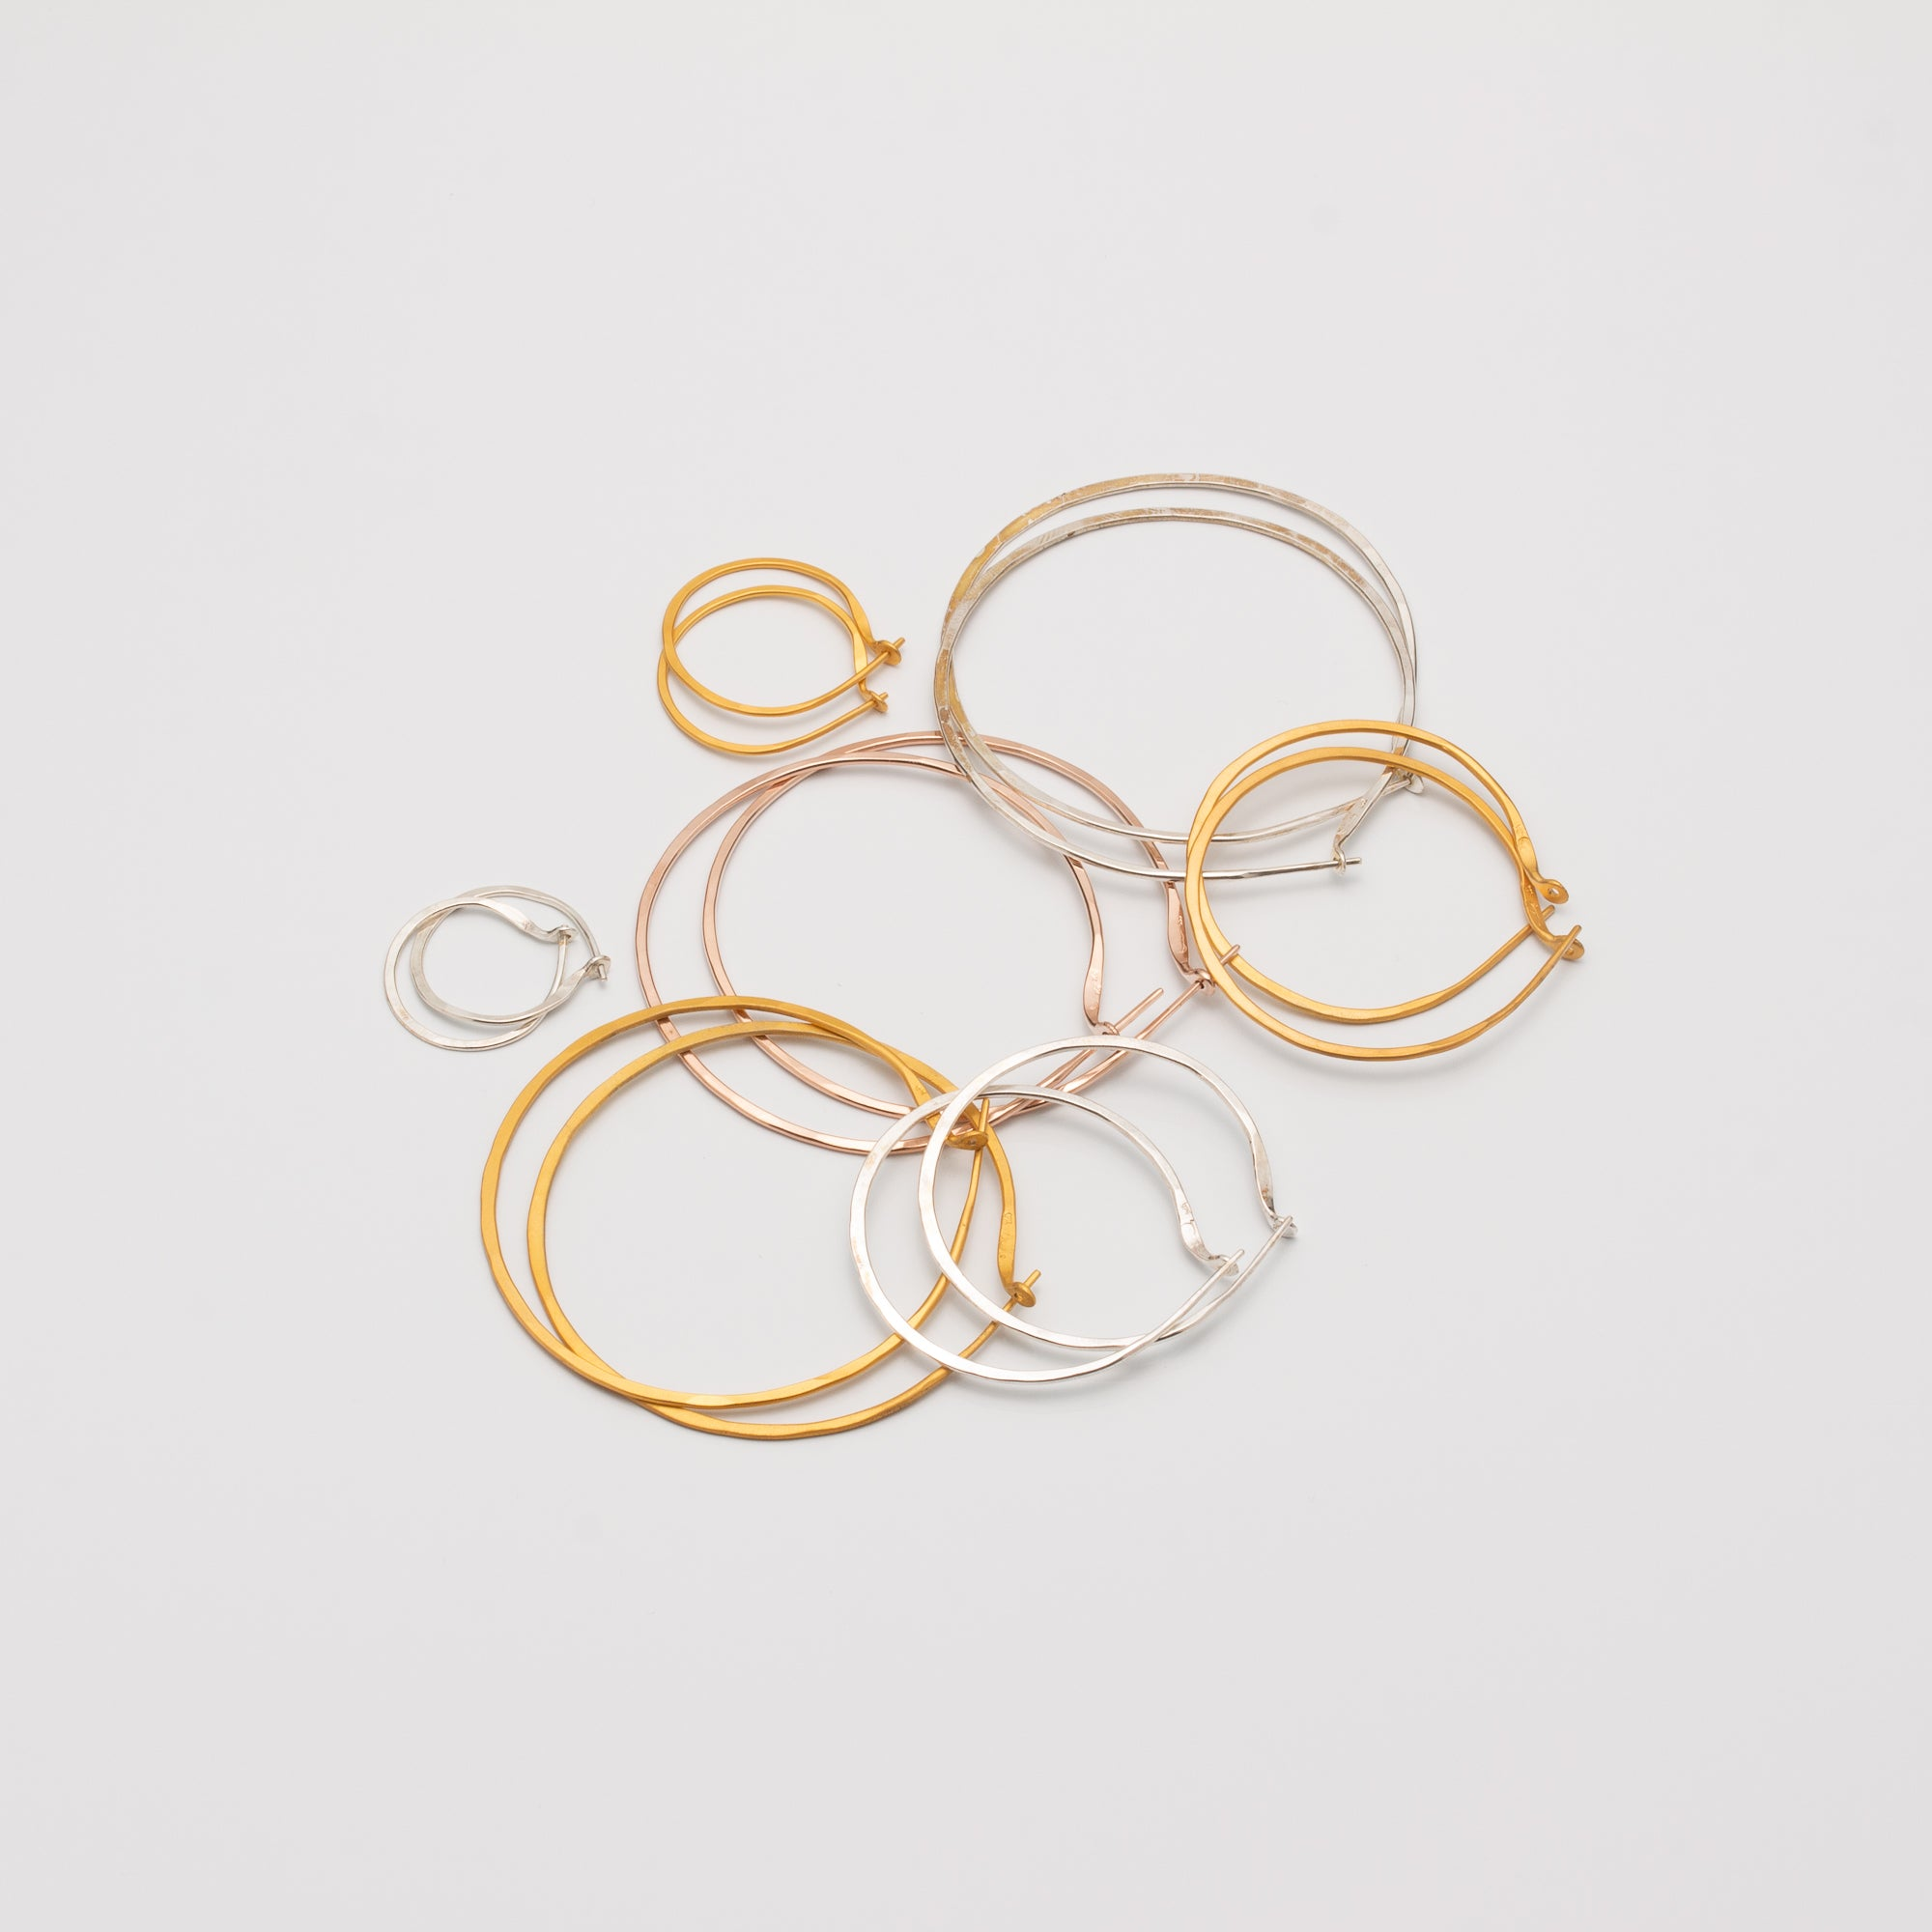 HOOPS // SMALL // ROUND // VERMEIL